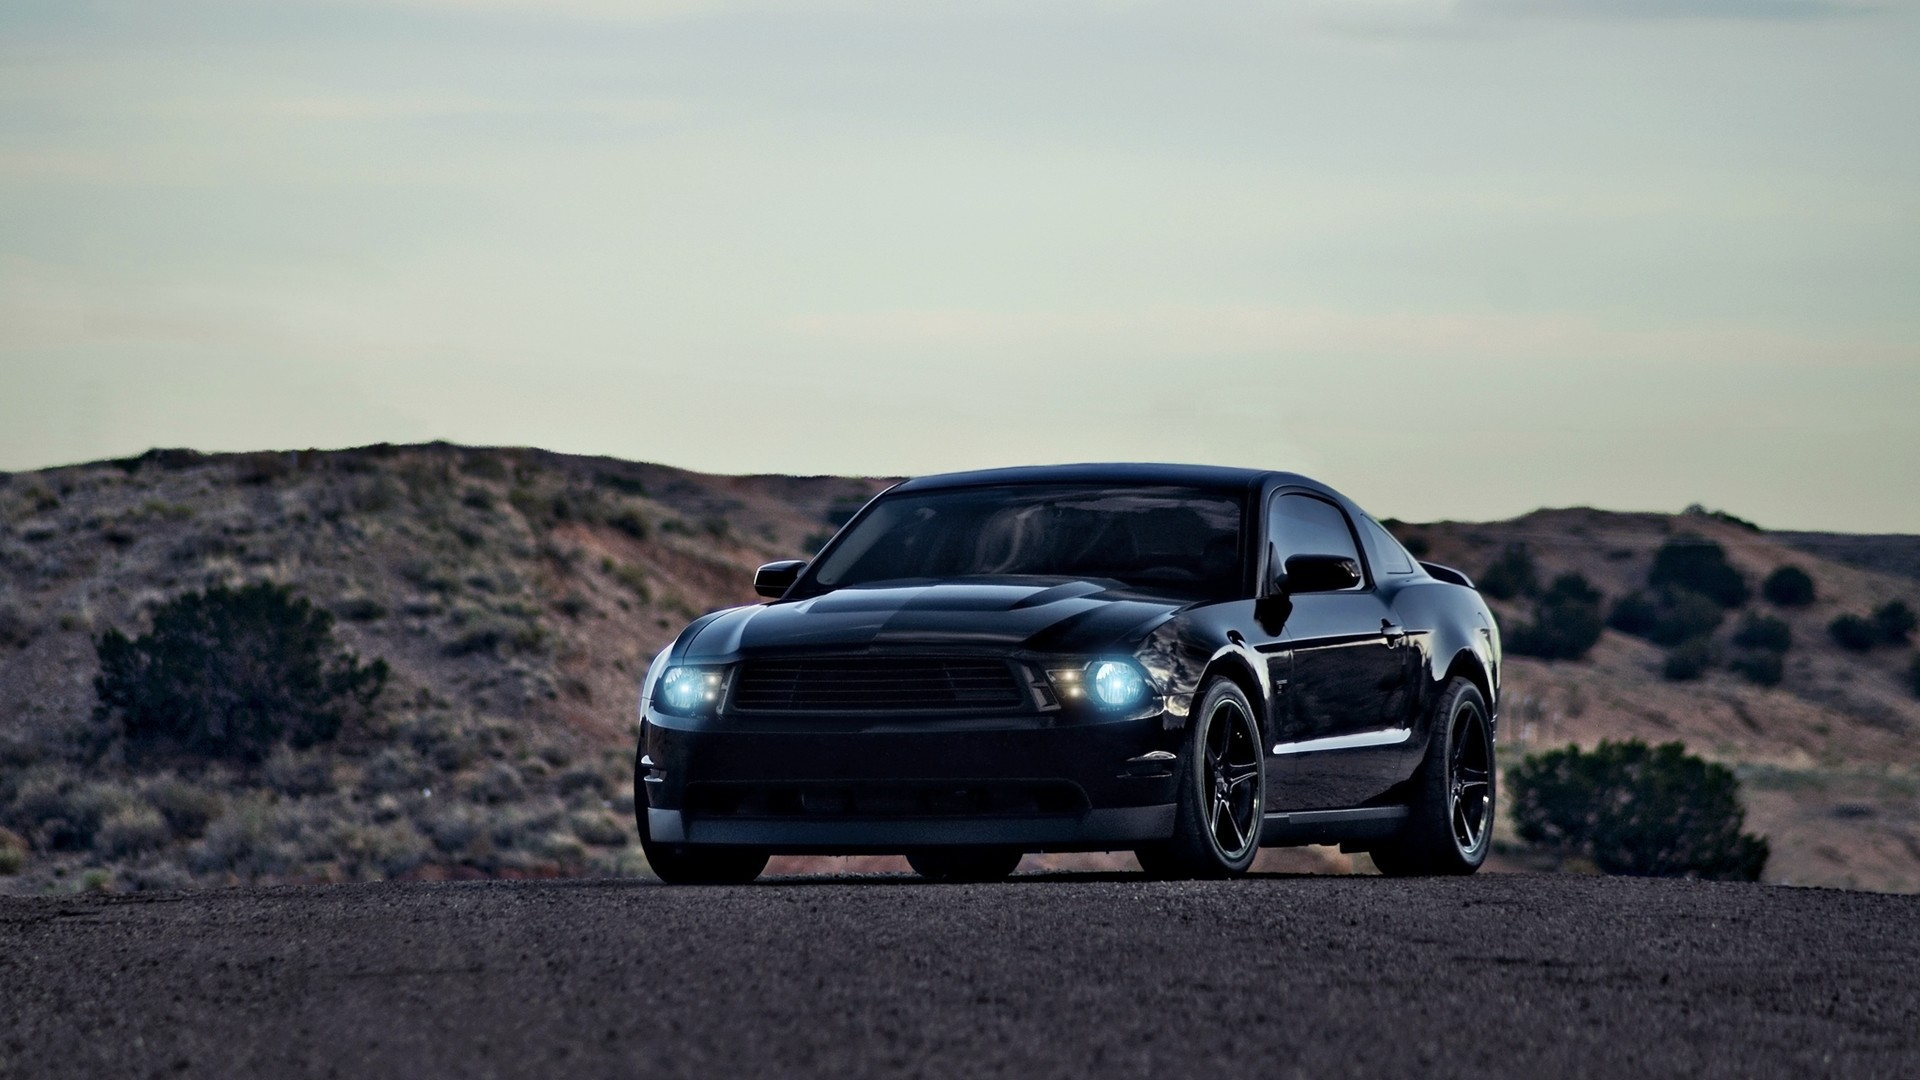 ford mustang gt500 black wallpapers and images wallpapers pictures - Mustang 2014 Black Wallpaper